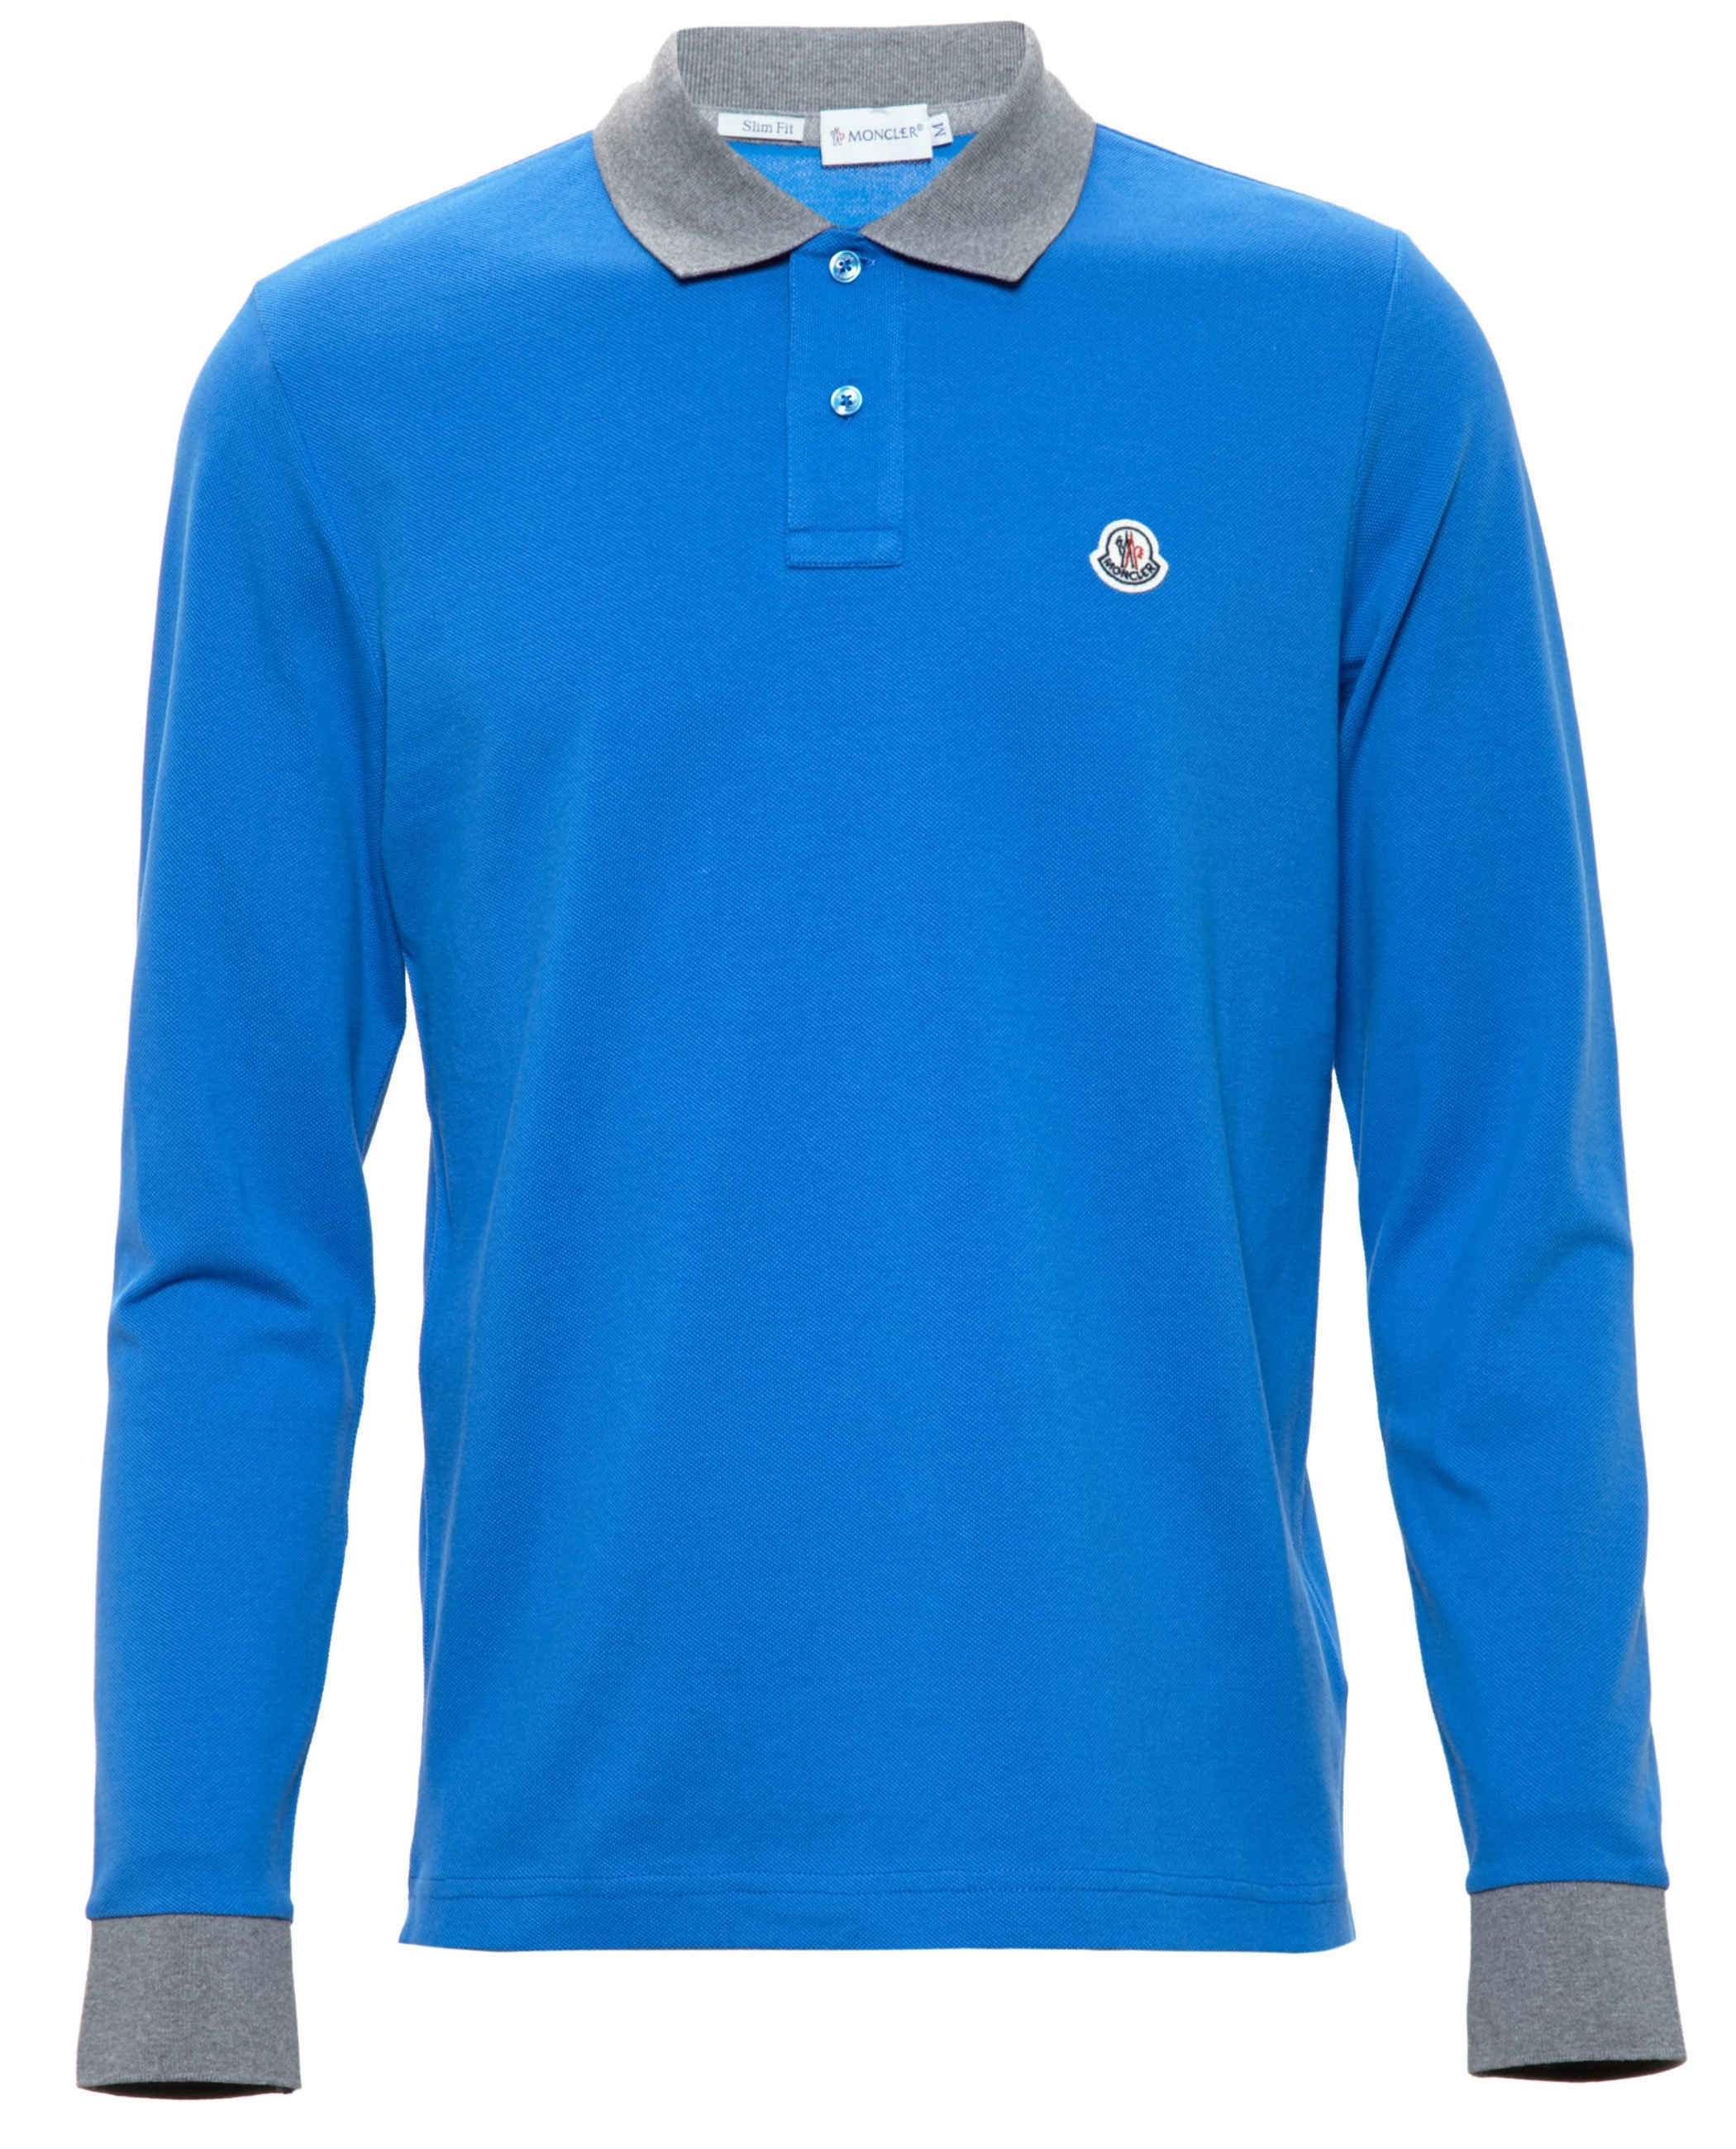 04a8badf0 Lyst - Moncler Longsleeve Polo Shirt in Blue for Men